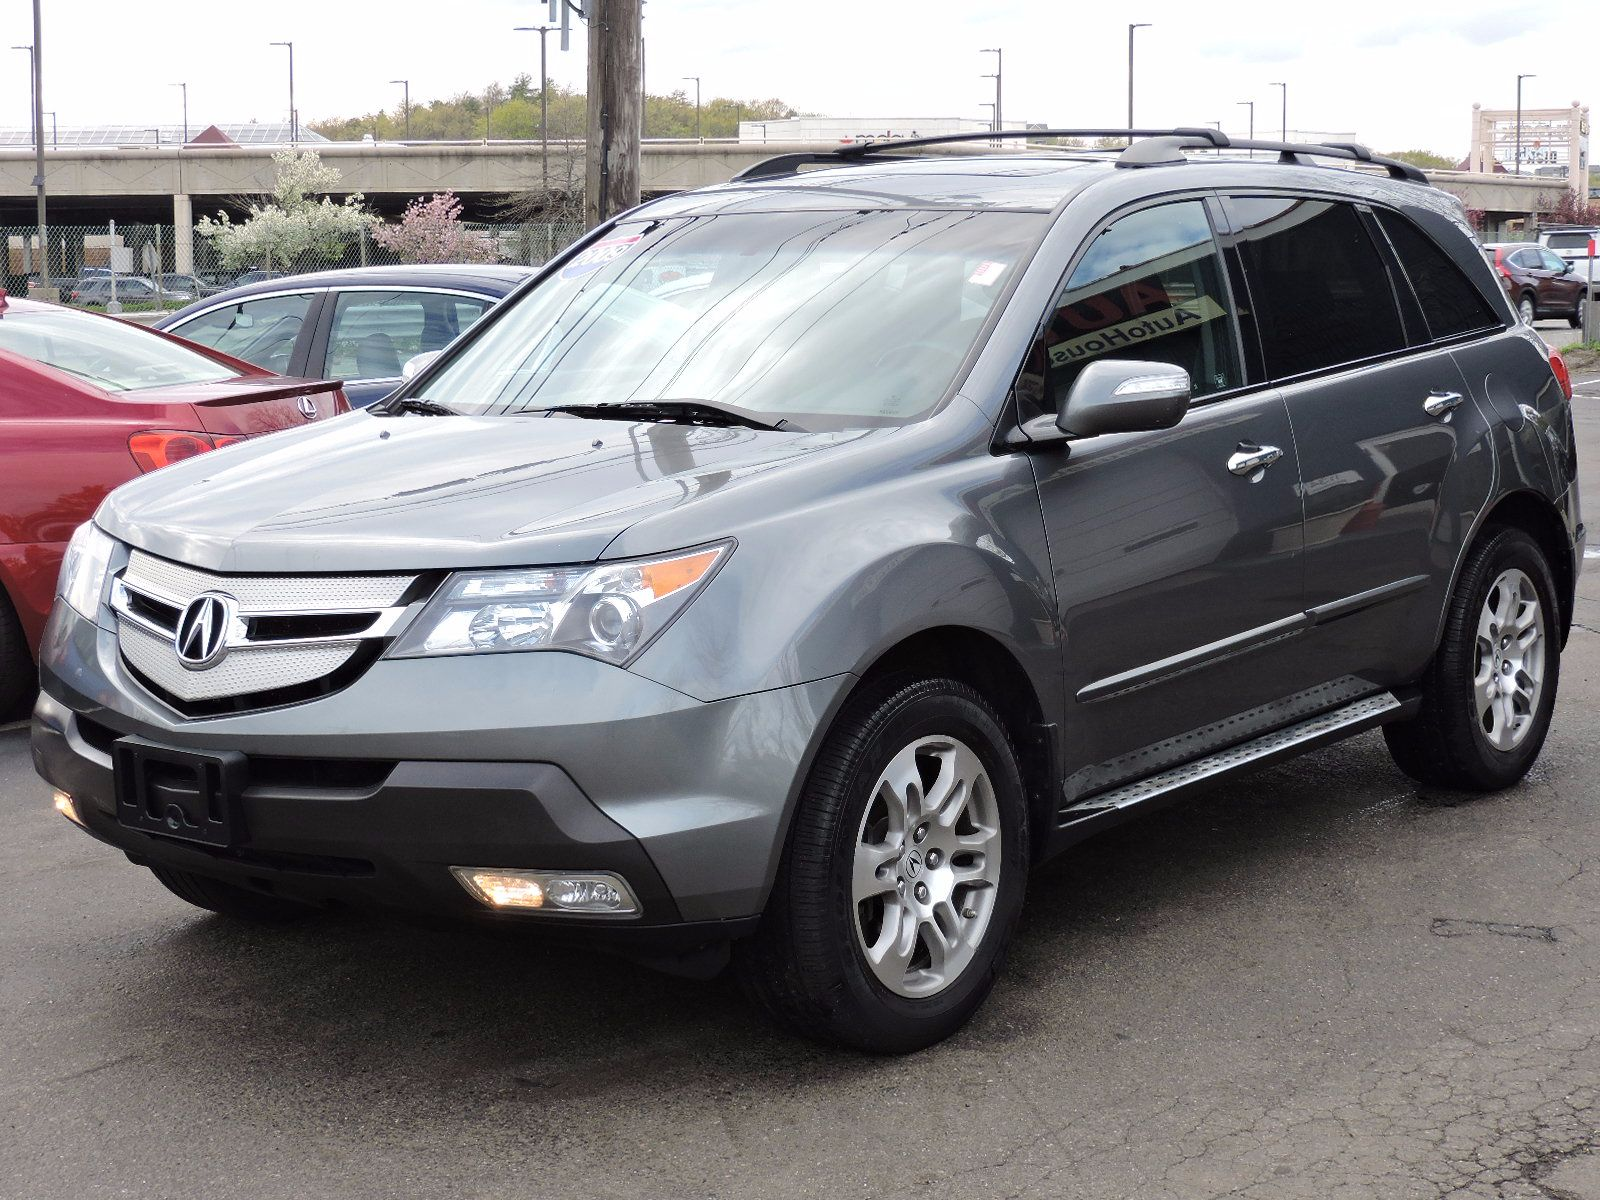 Acura Mdx 2009 Price In Nigeria Now